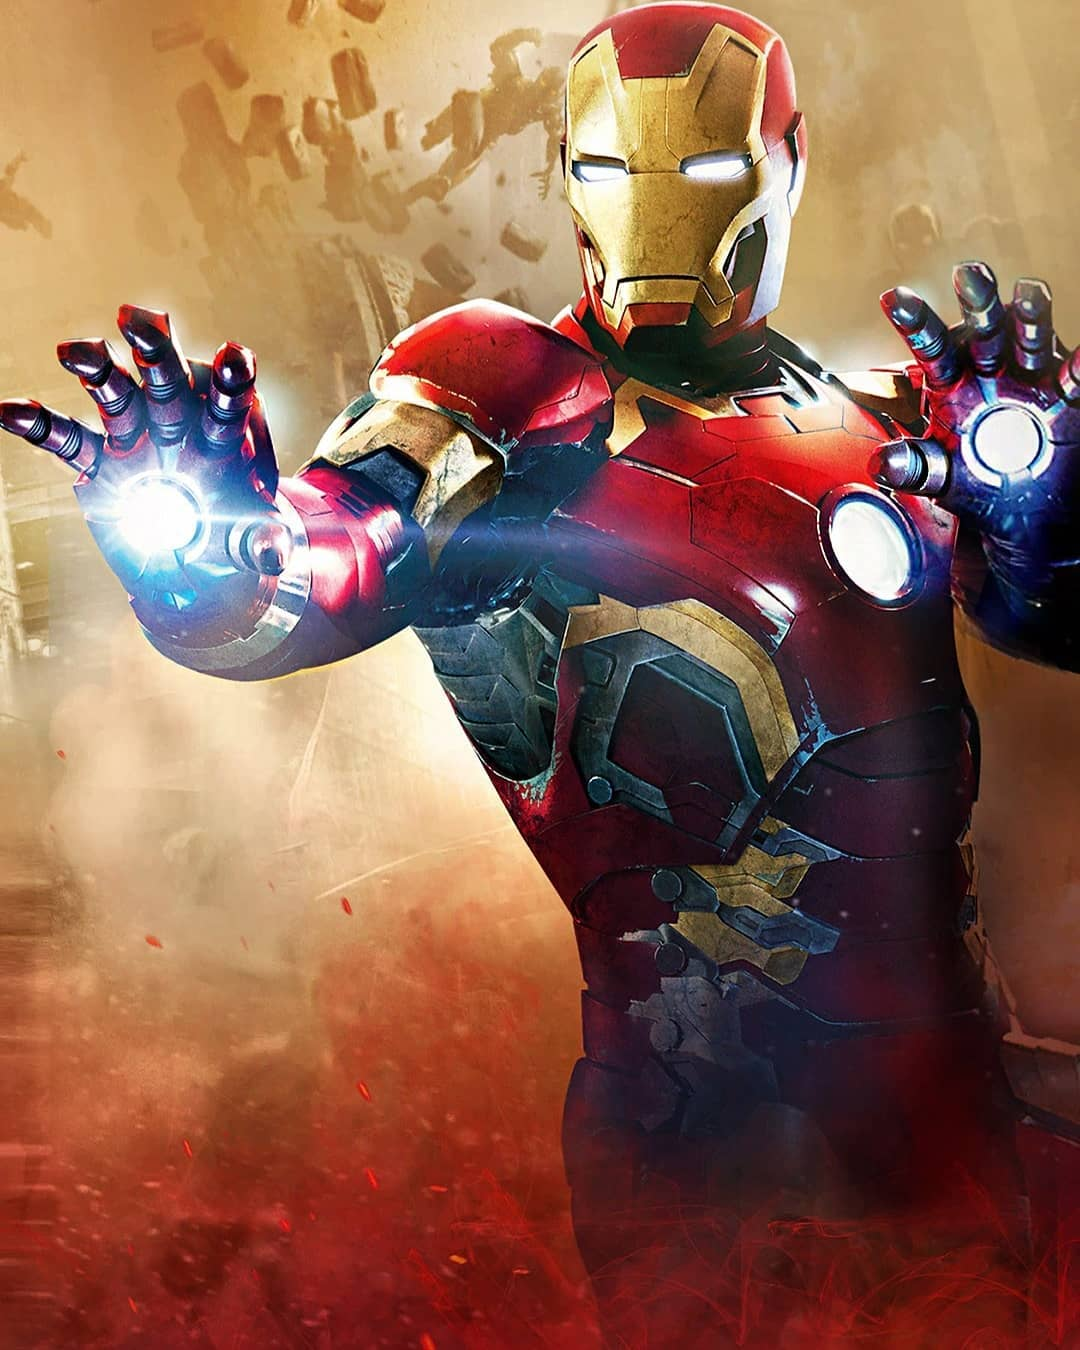 Iron Man Wallpaper 4k For Mobile And Pc Free Download